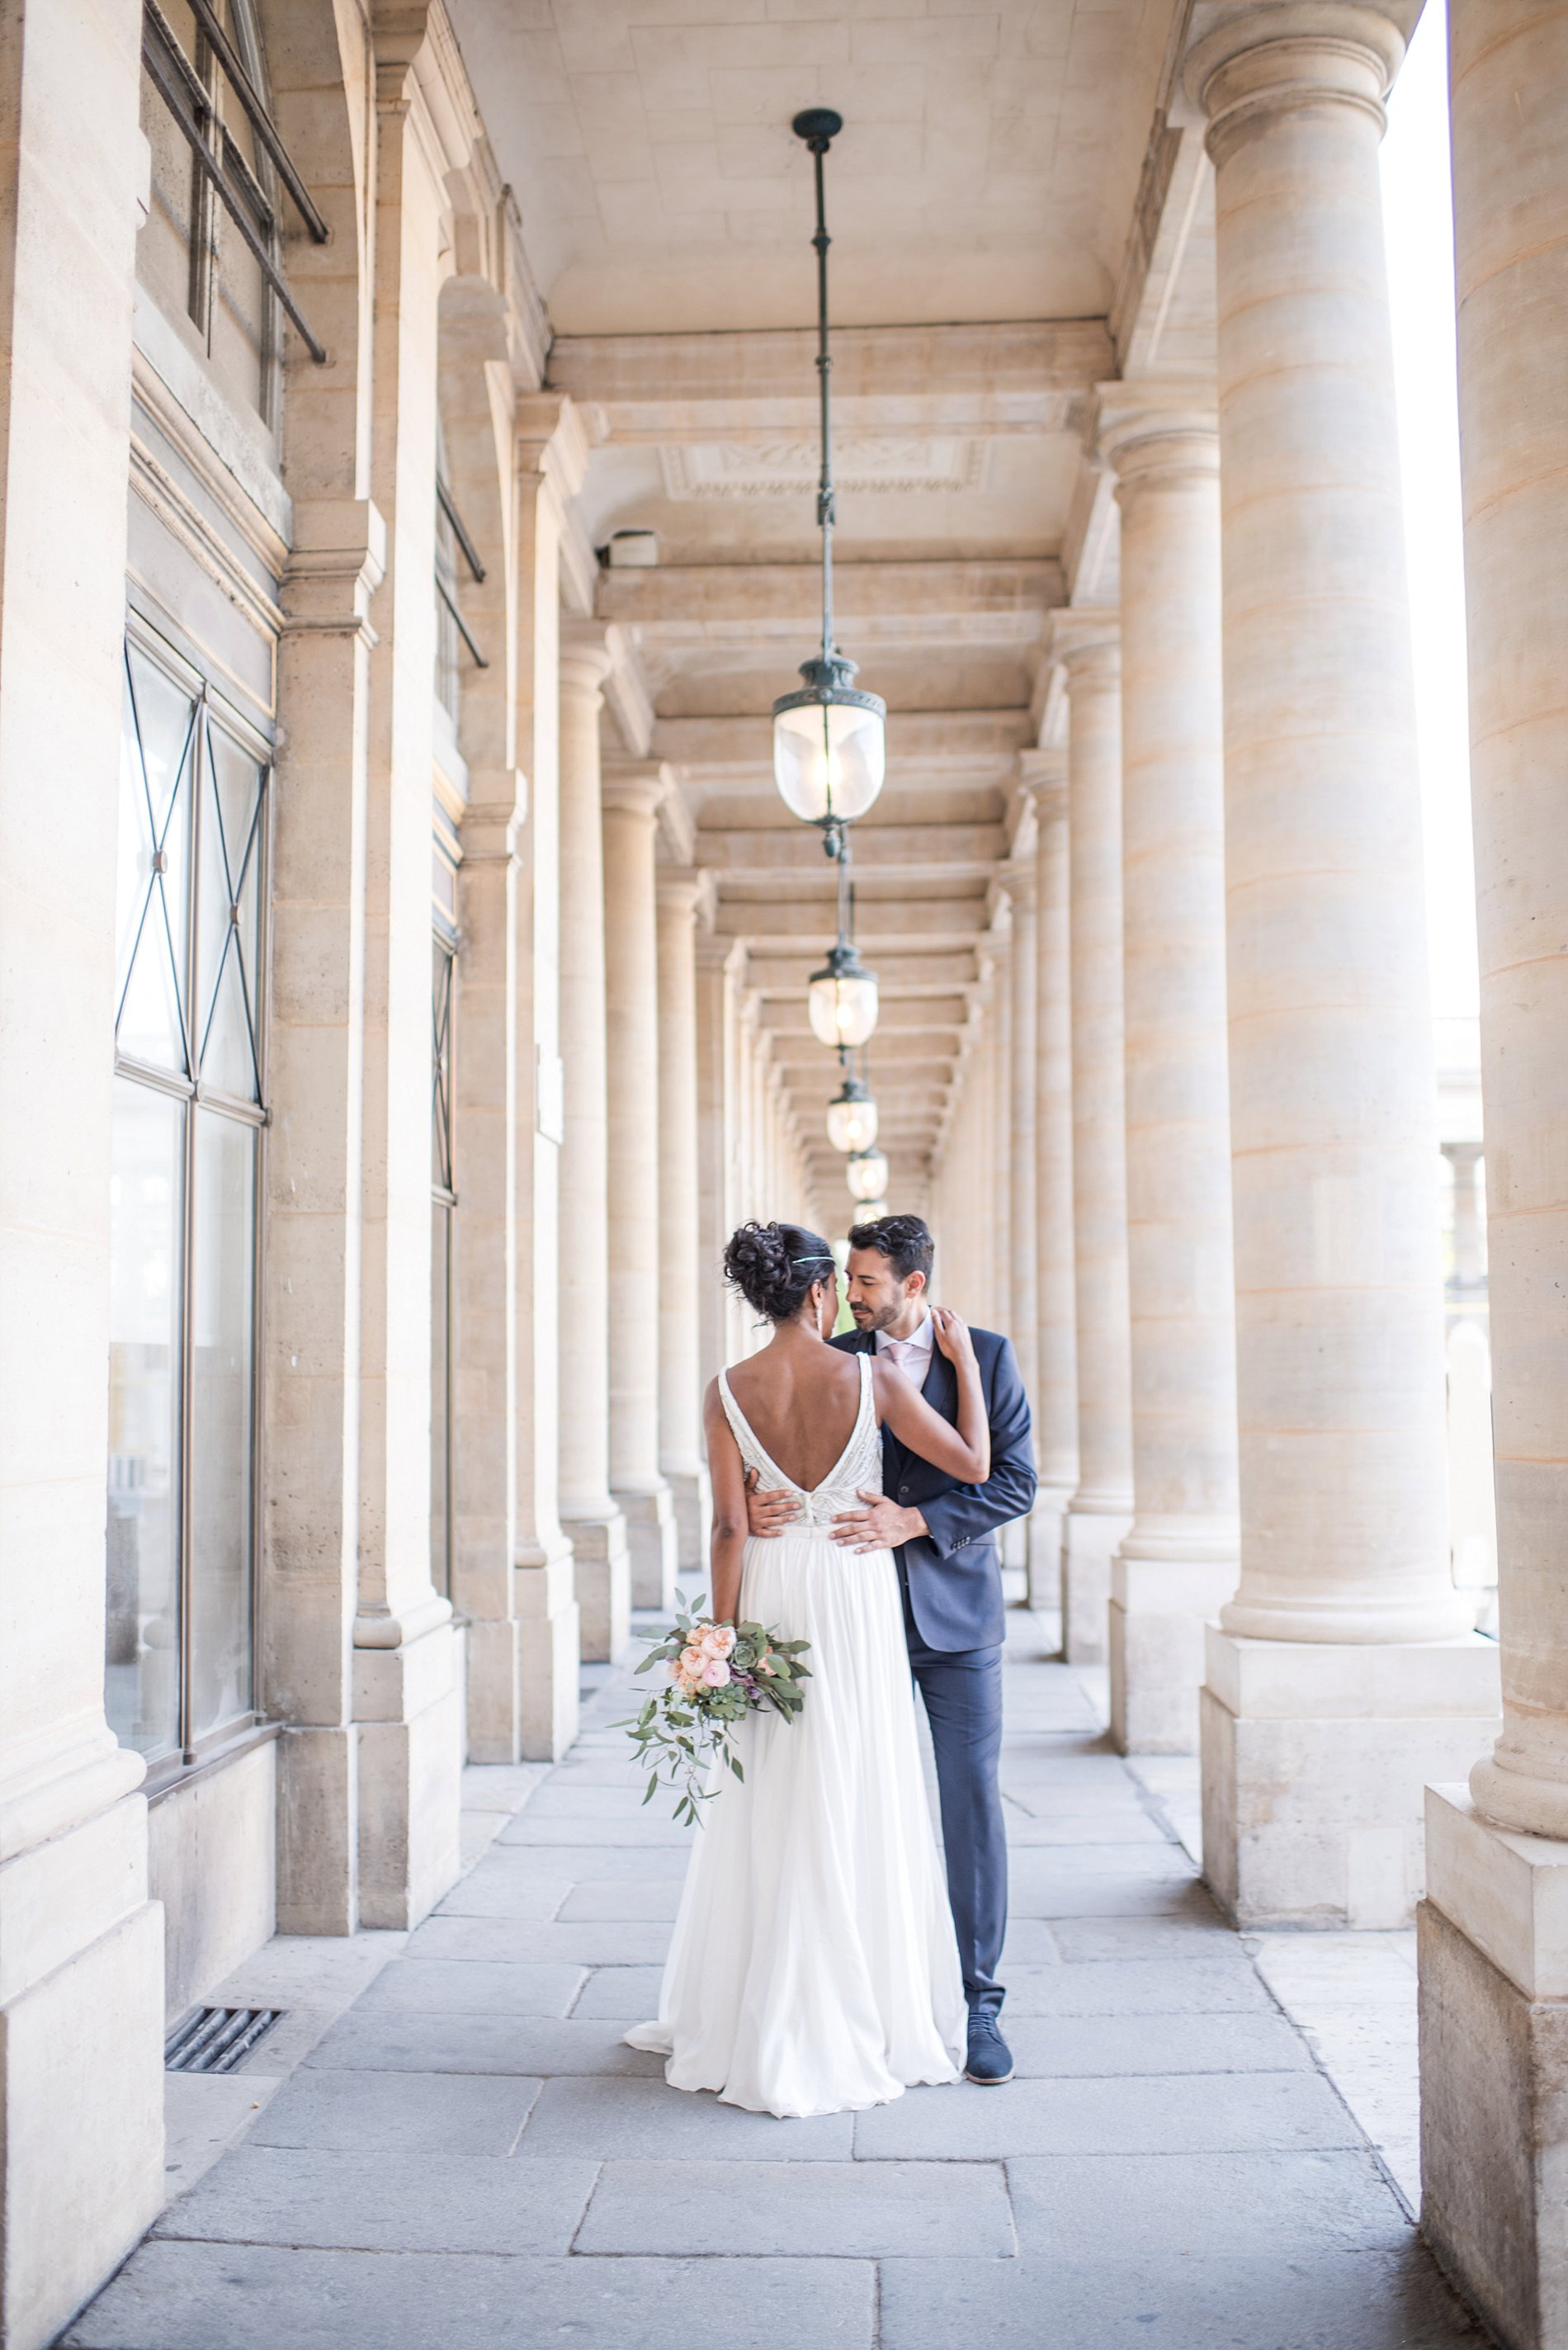 Paris elopement wedding photography by Jane Beadnell Photography-447